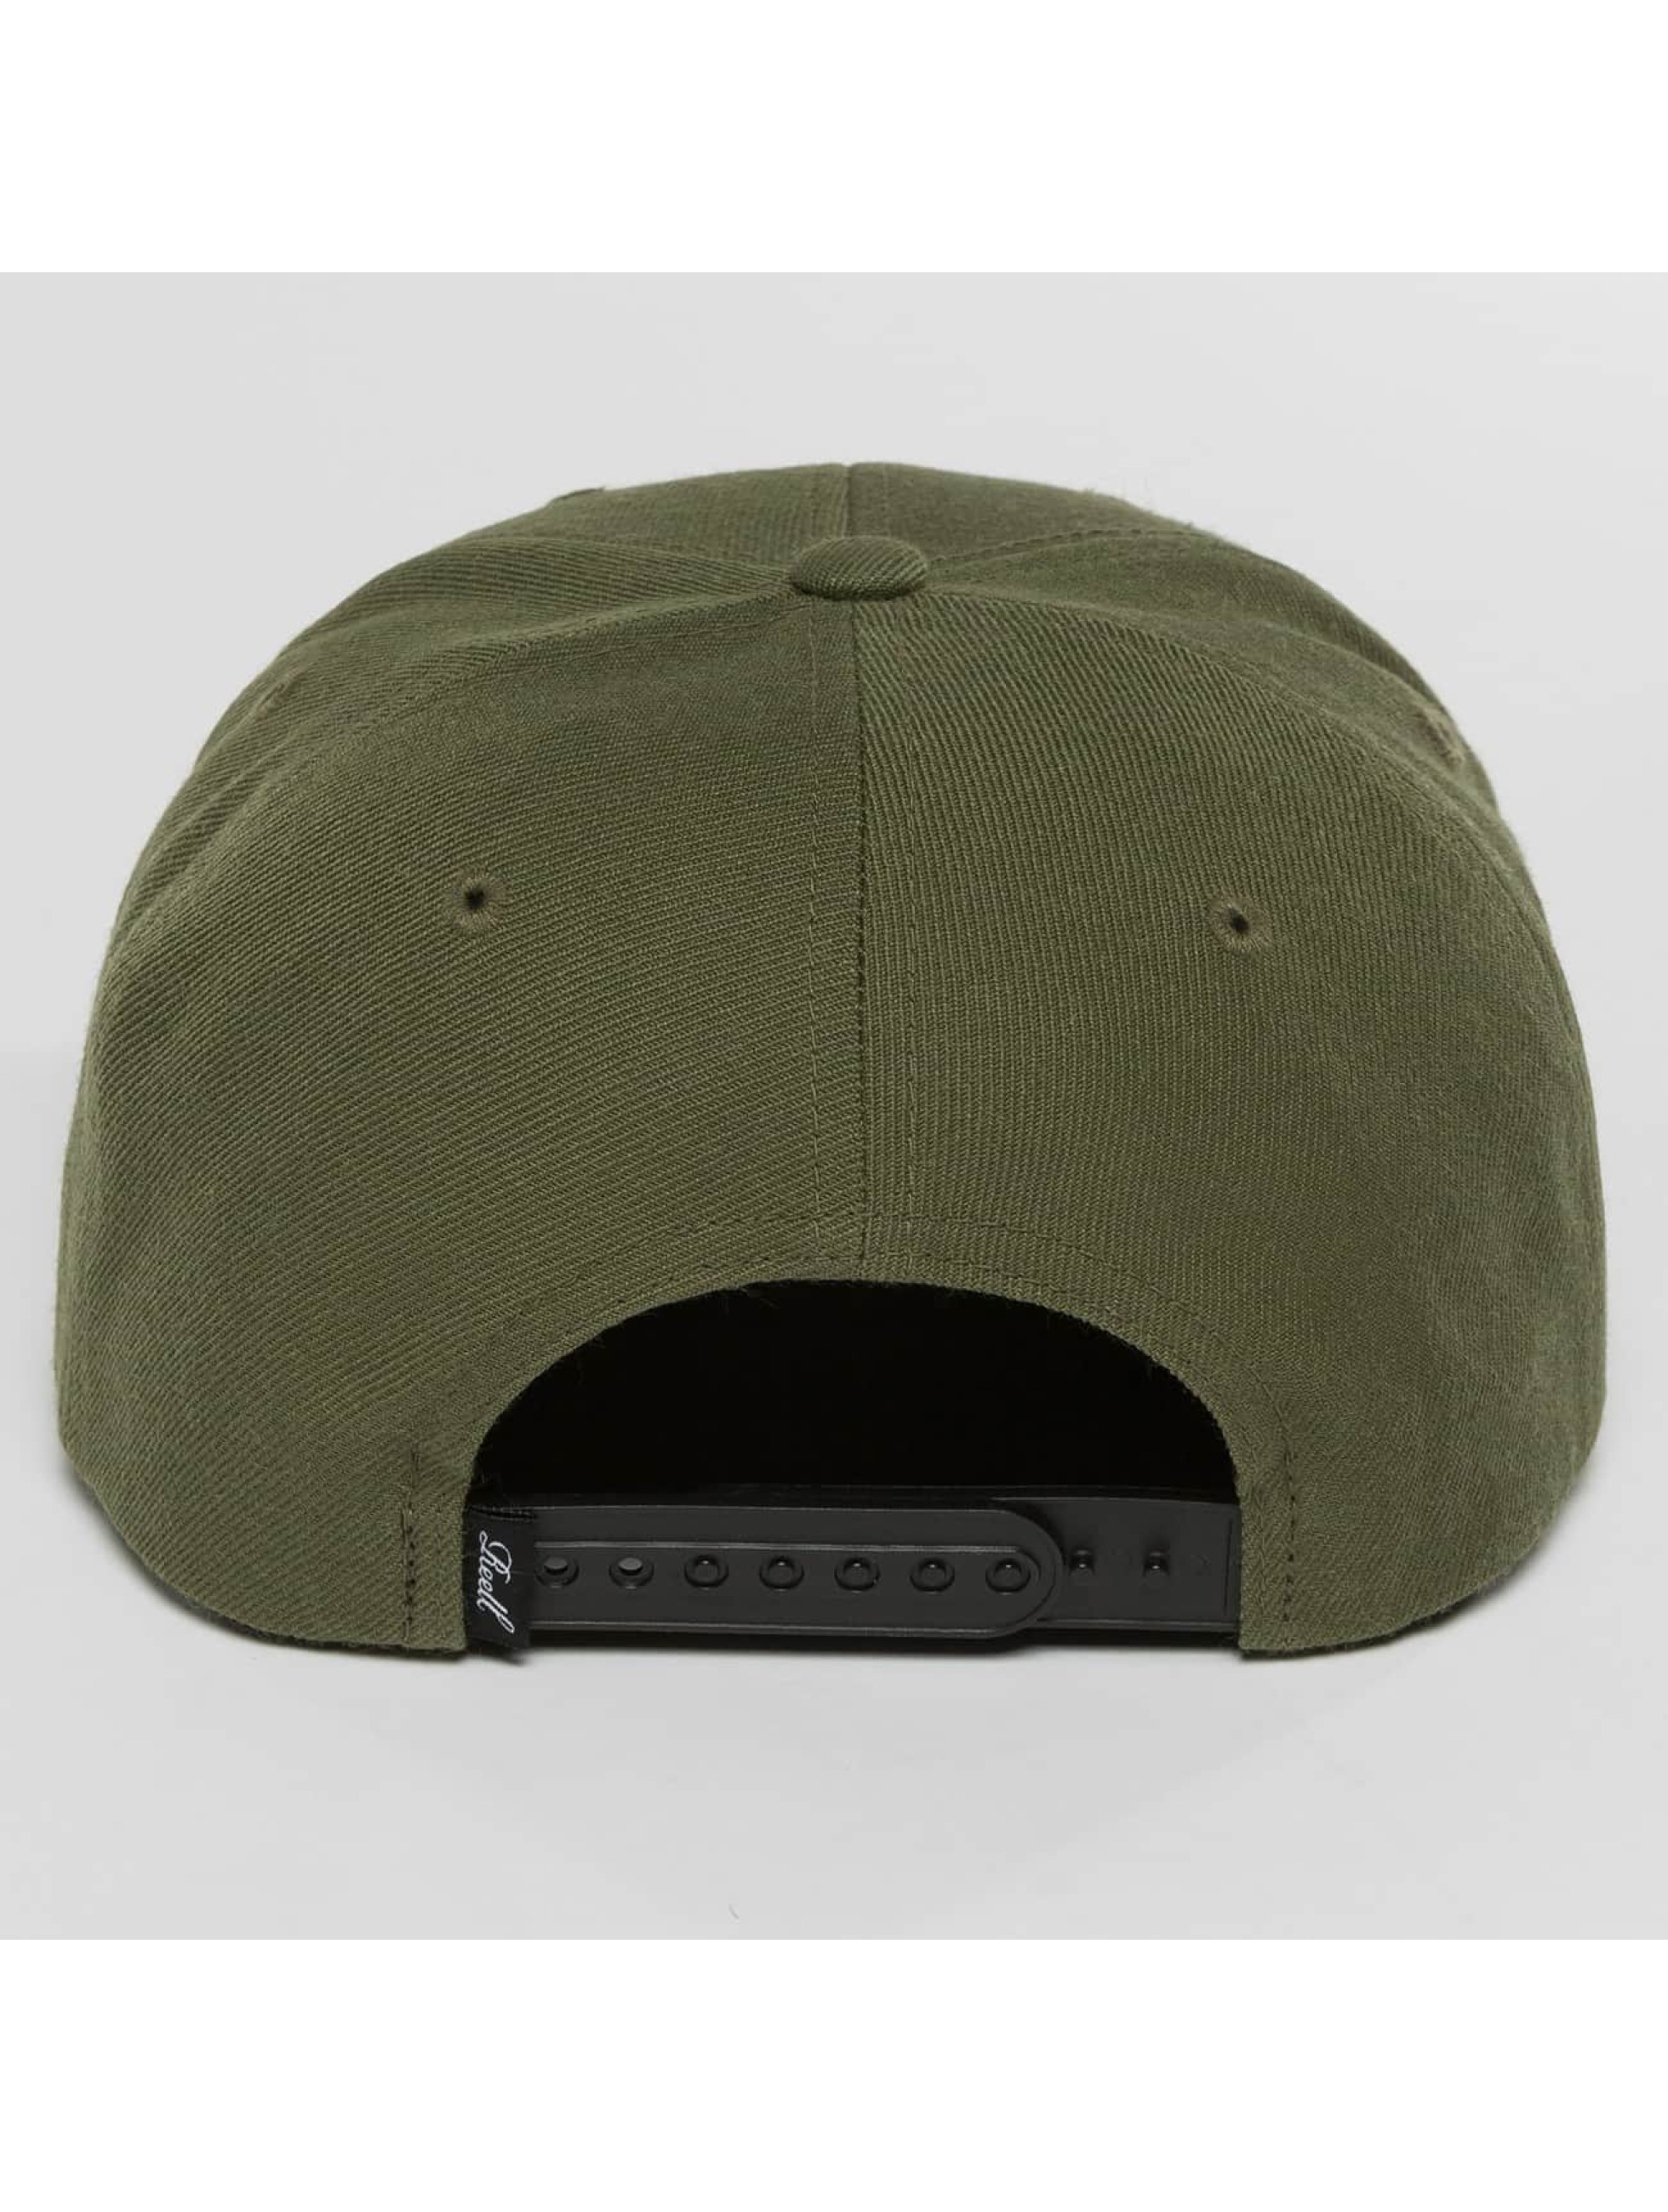 Reell Jeans Casquette Snapback & Strapback Pitchout olive